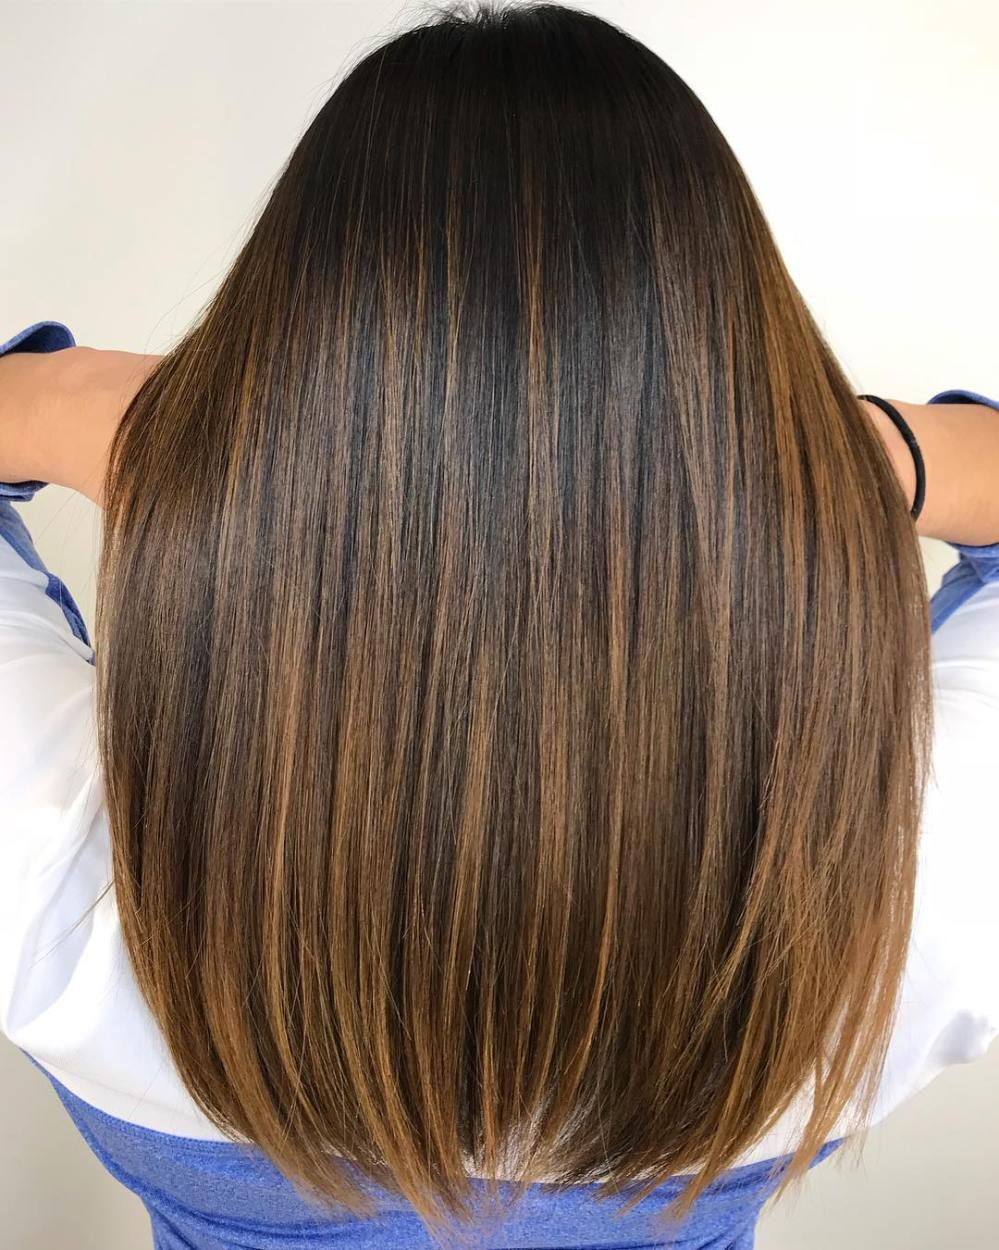 60 Looks With Caramel Highlights On Brown And Dark Brown Hair Caramel Hair Highlights Brown Hair Shades Brown Ombre Hair